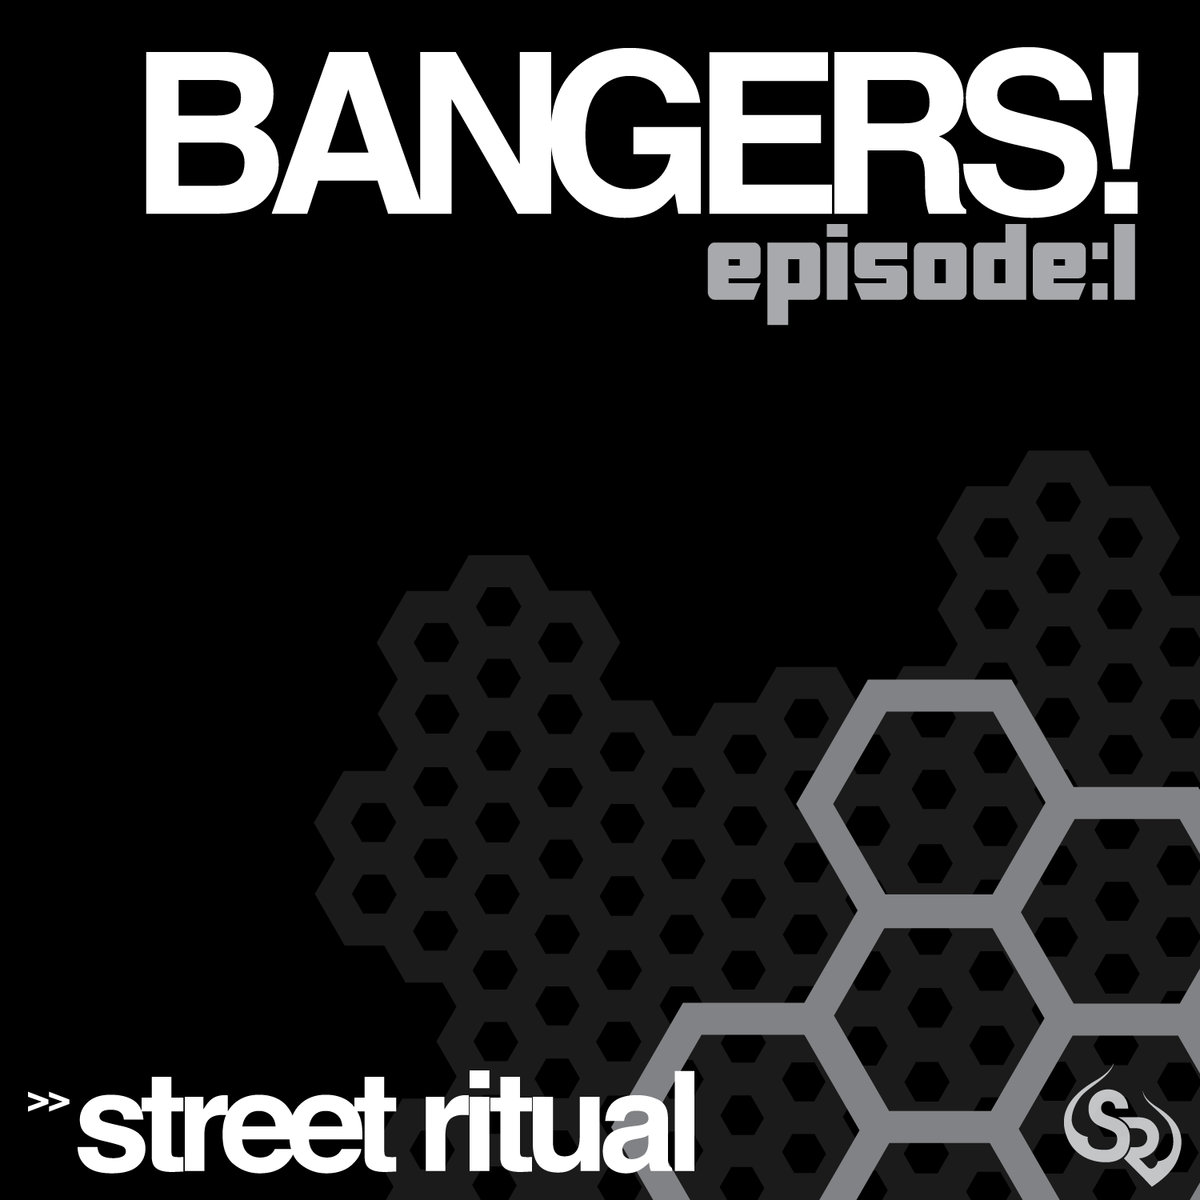 SugarBeats - Nickles @ 'Various Artists - Bangers! Episode:1' album (bass, electronic)